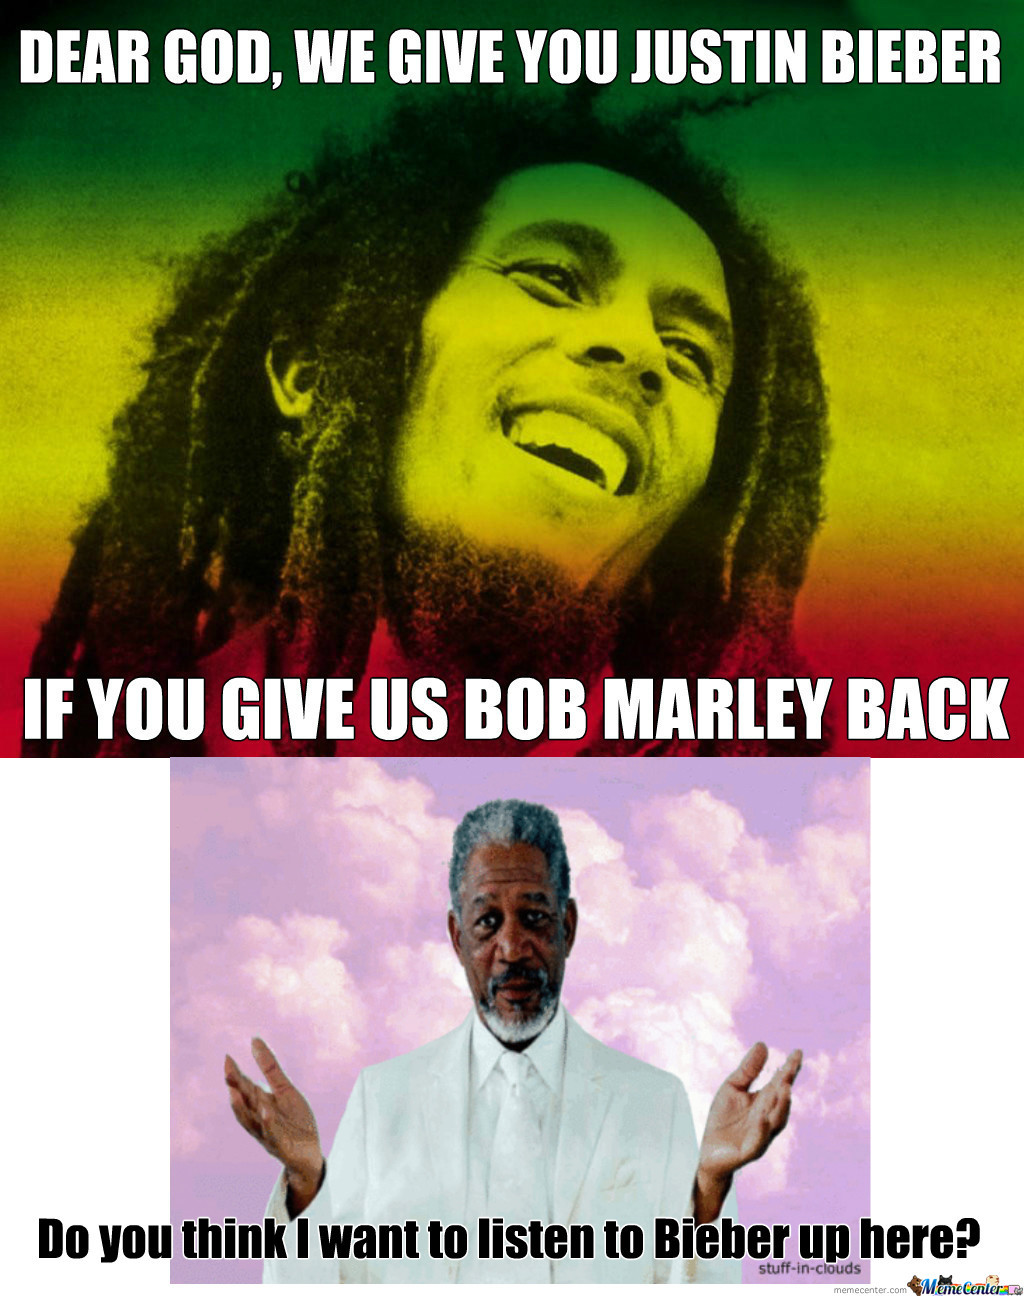 [RMX] Dammit, I Want Bob Back!